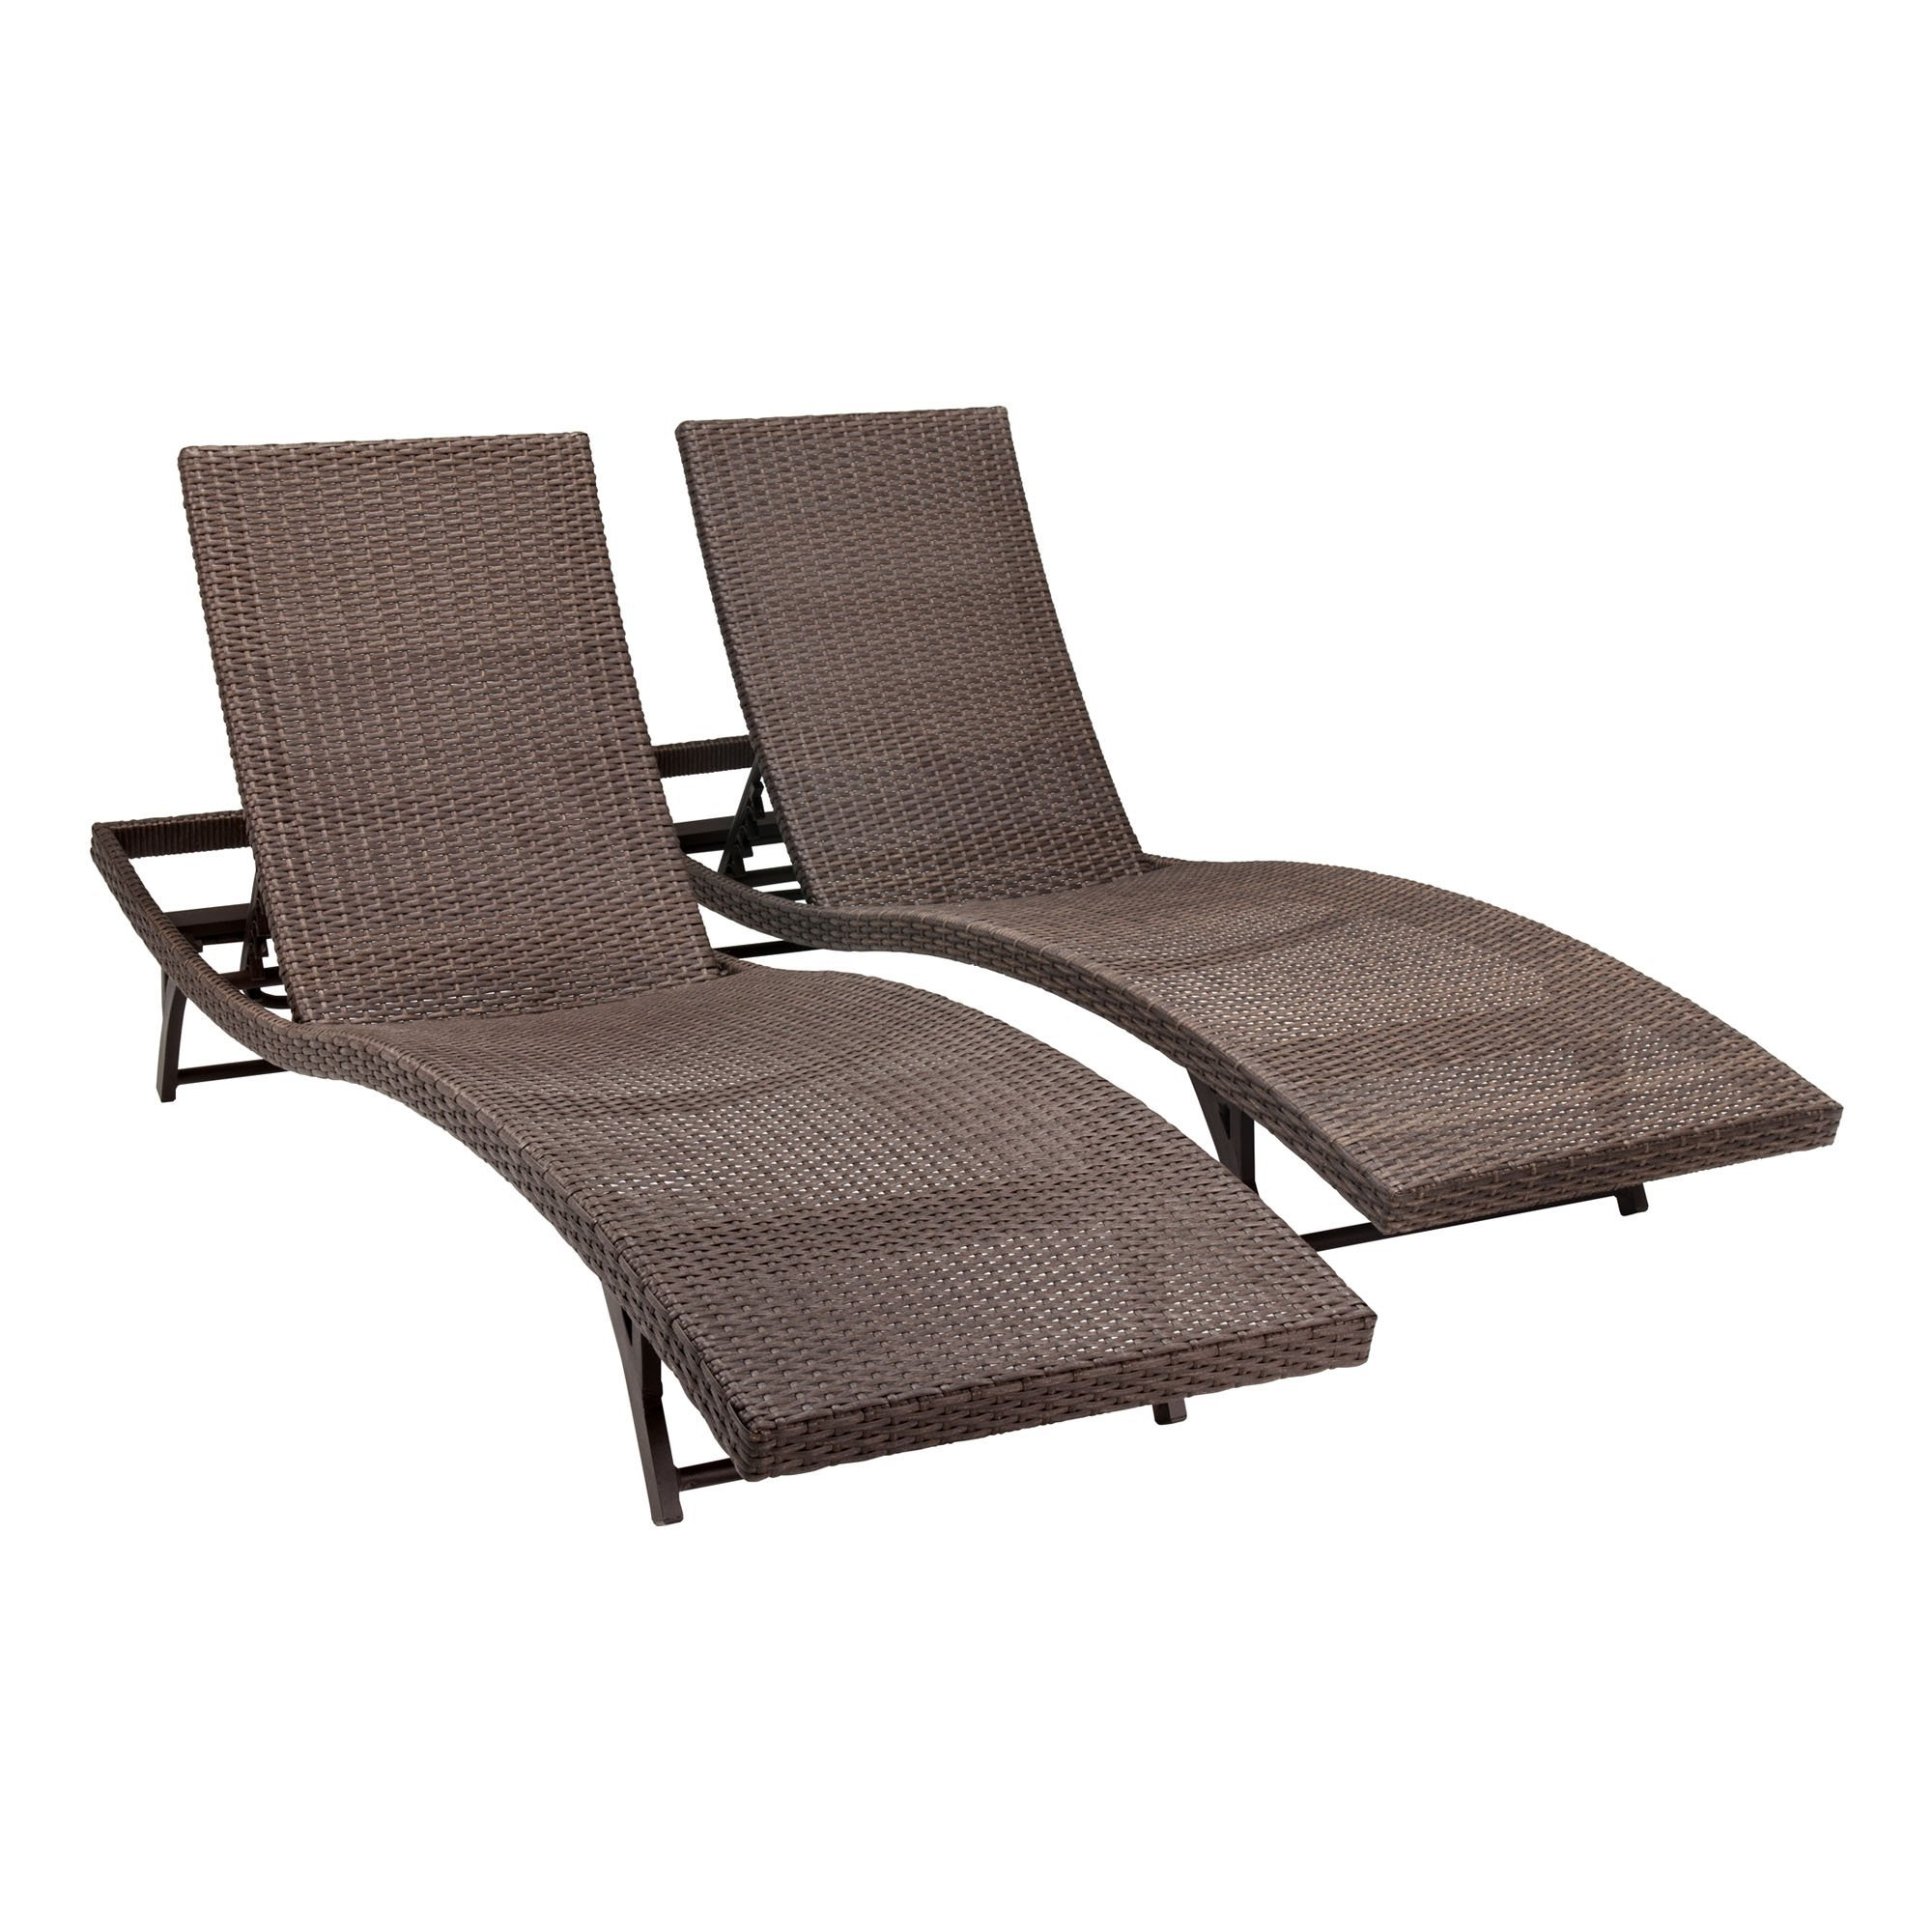 Most Popular Outdoor : Jelly Lounge Chair Chaise Lounge Sofa Chaise Lounge In Jelly Chaise Lounge Chairs (View 11 of 15)